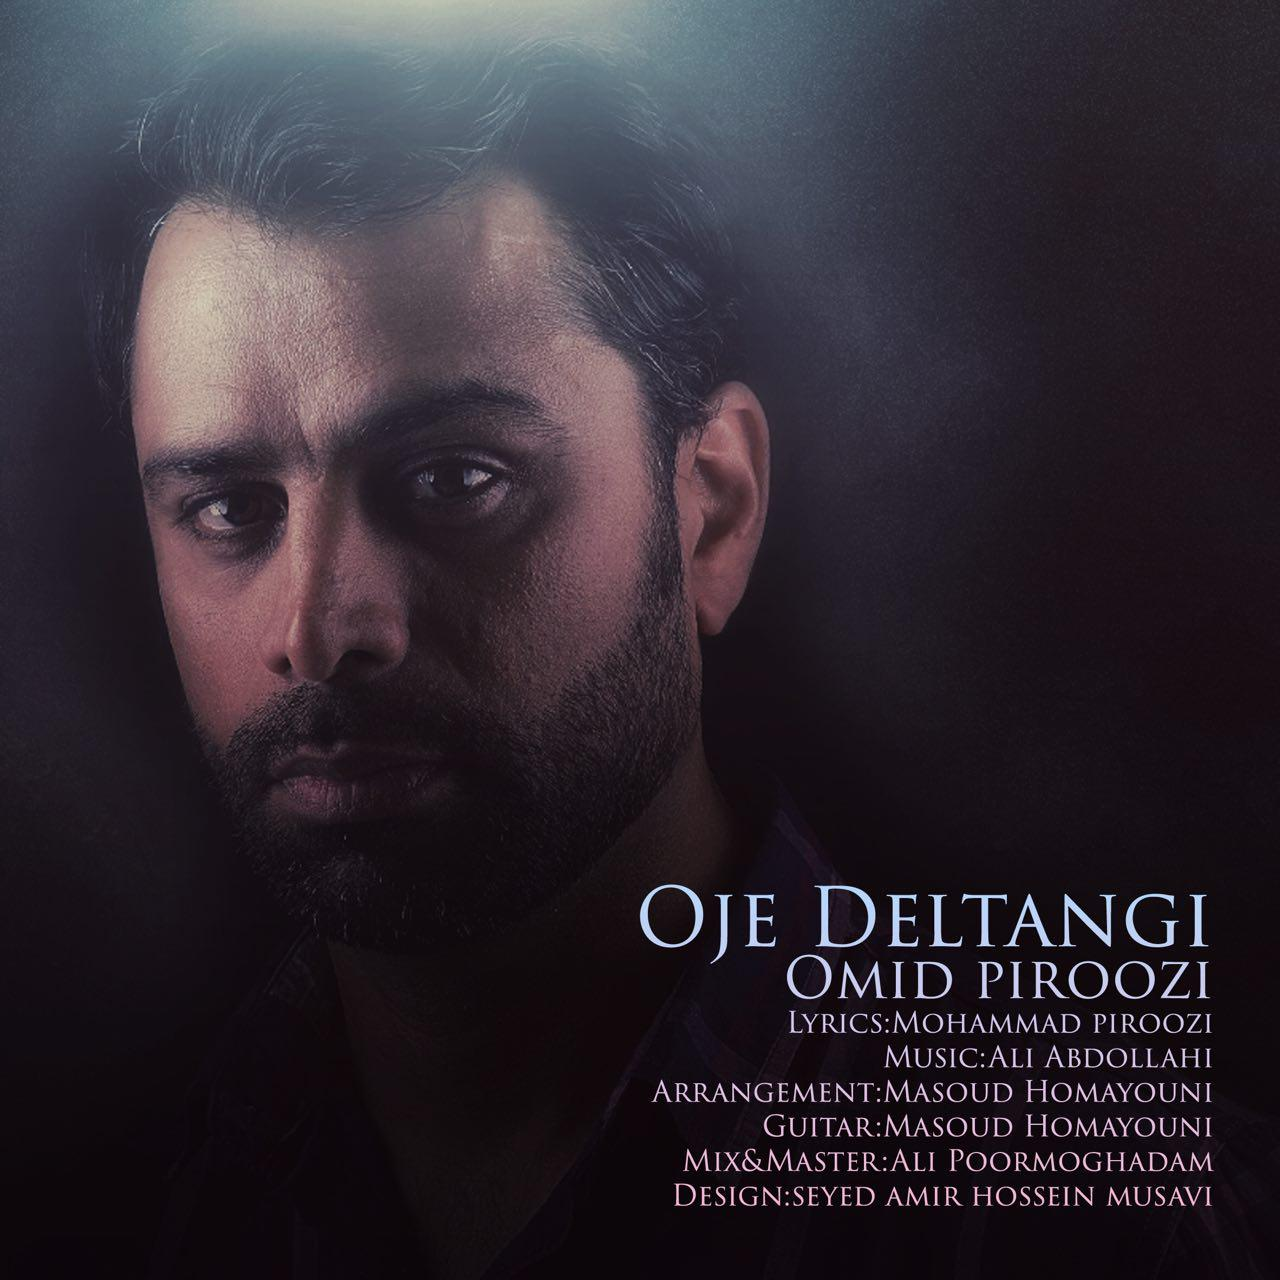 Omid Piroozi – Owje Deltangi